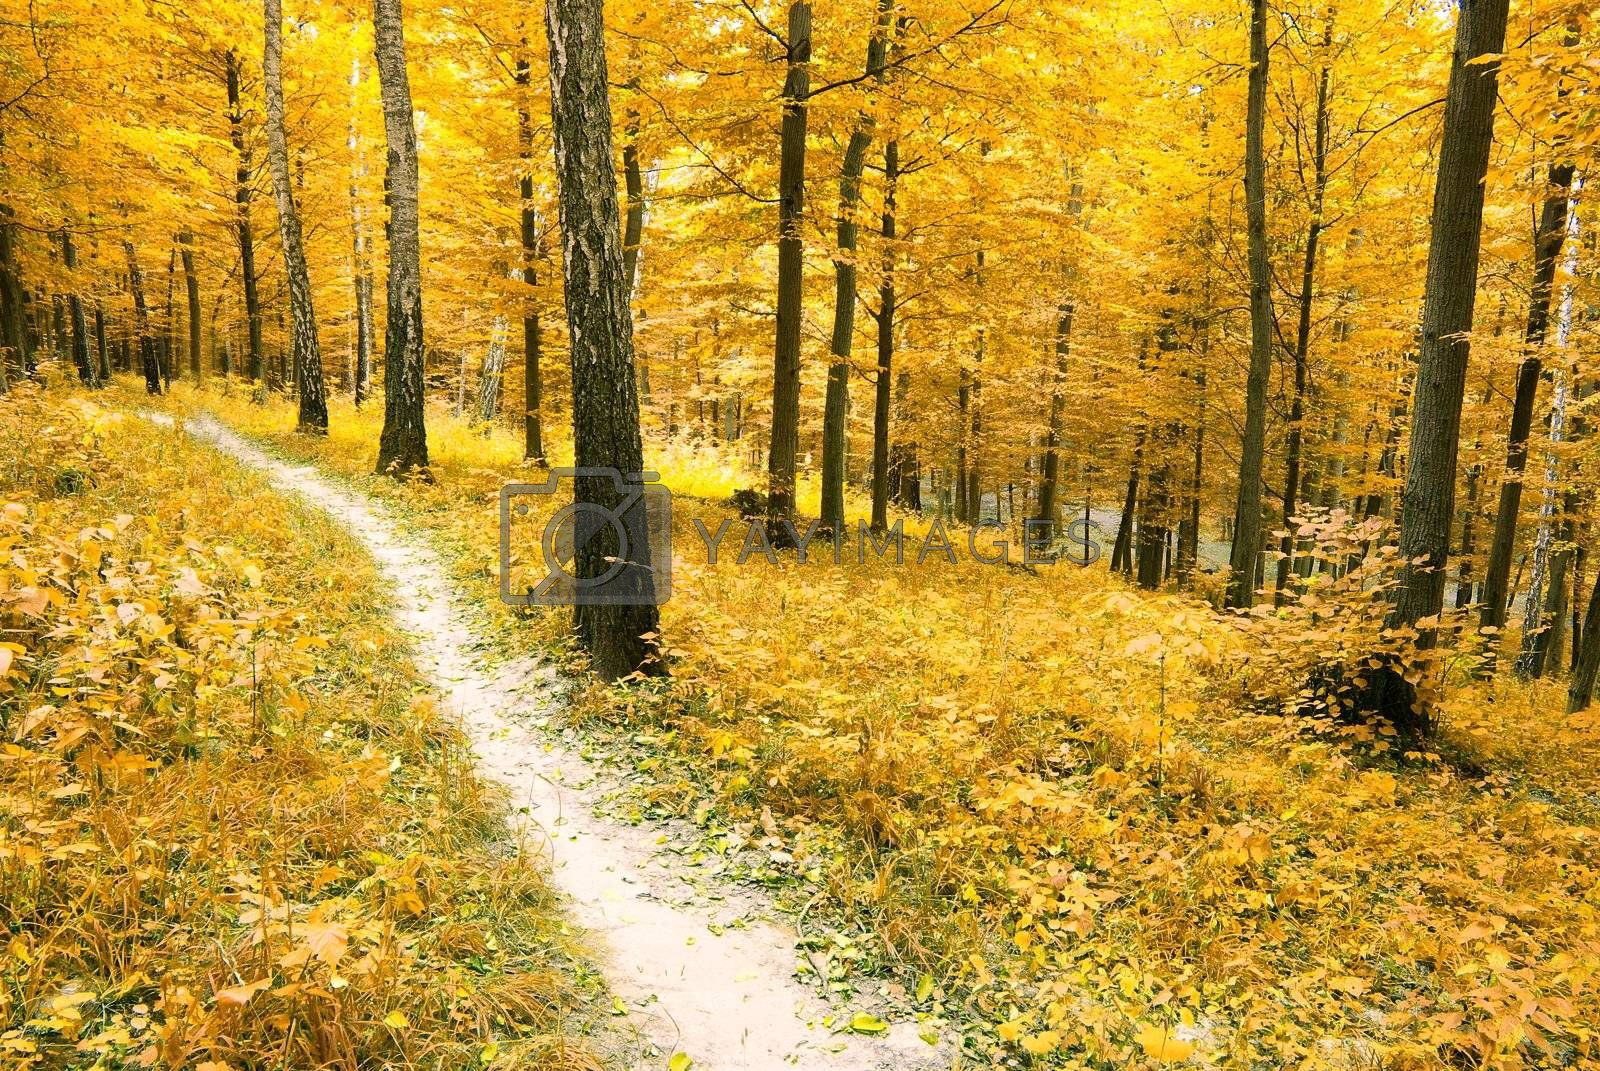 a path is in the autumn forest